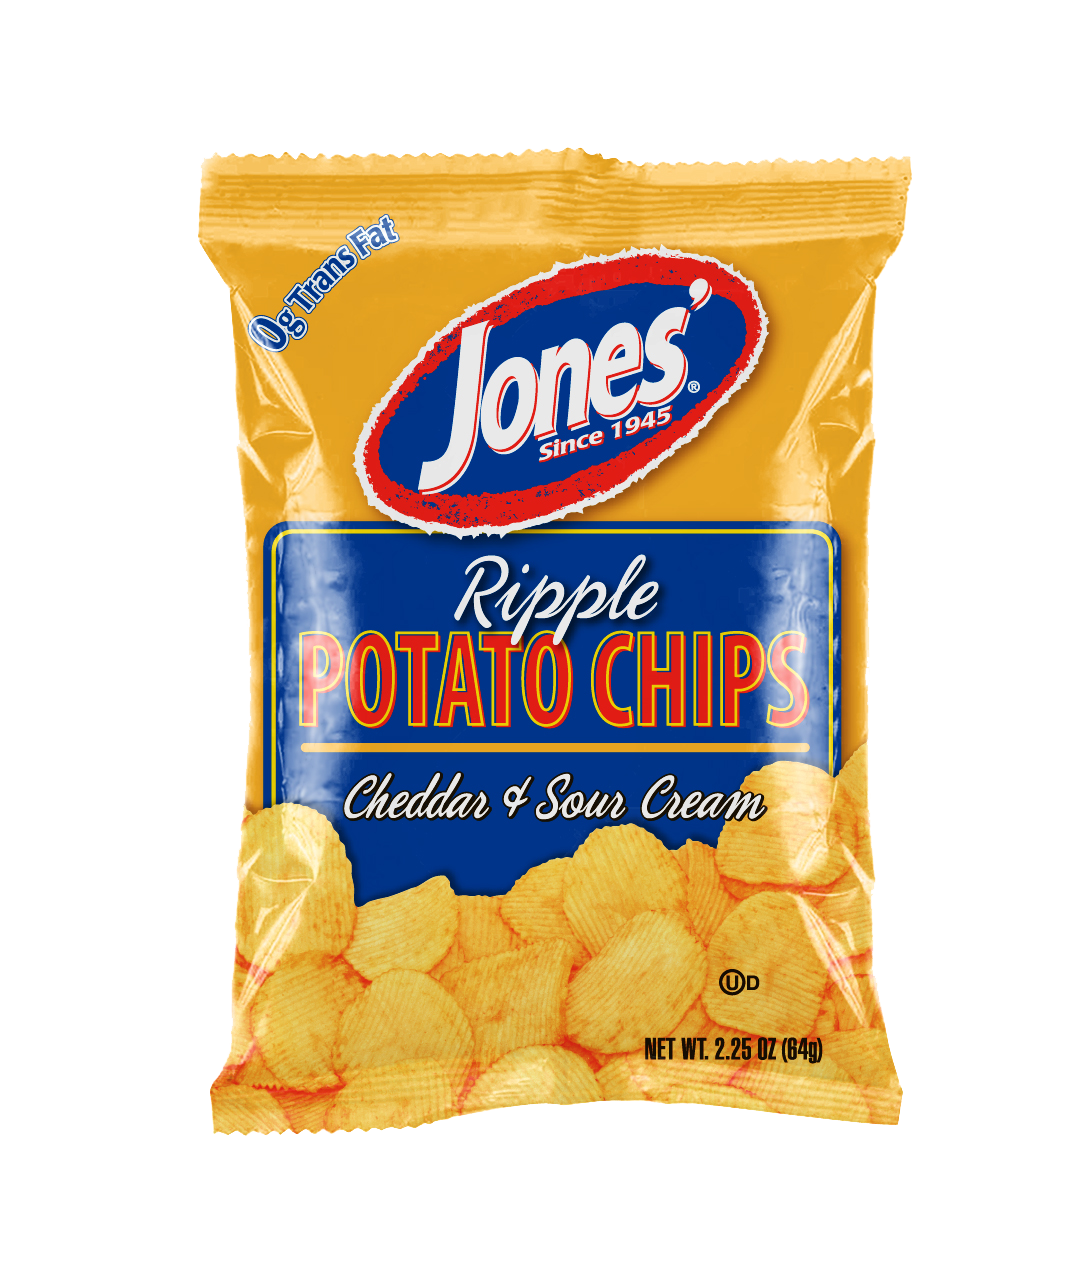 Ripple Cheddar & Sour Cream Potato Chips 9 oz, 2.25 oz